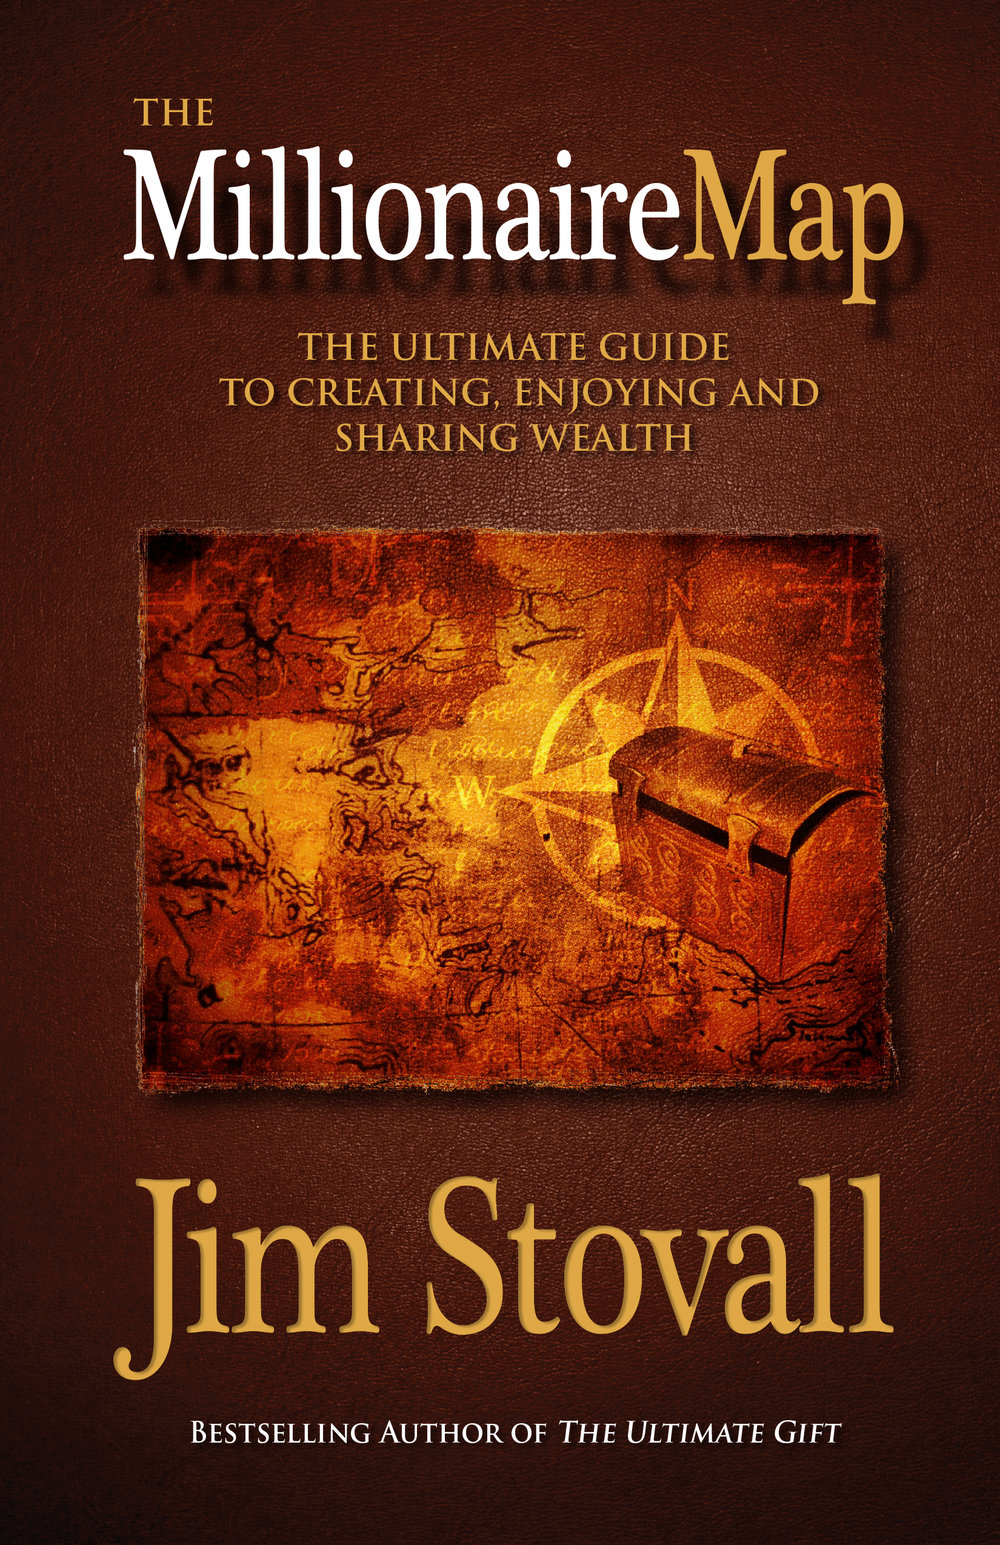 The Millionaire Map - By jim stovall